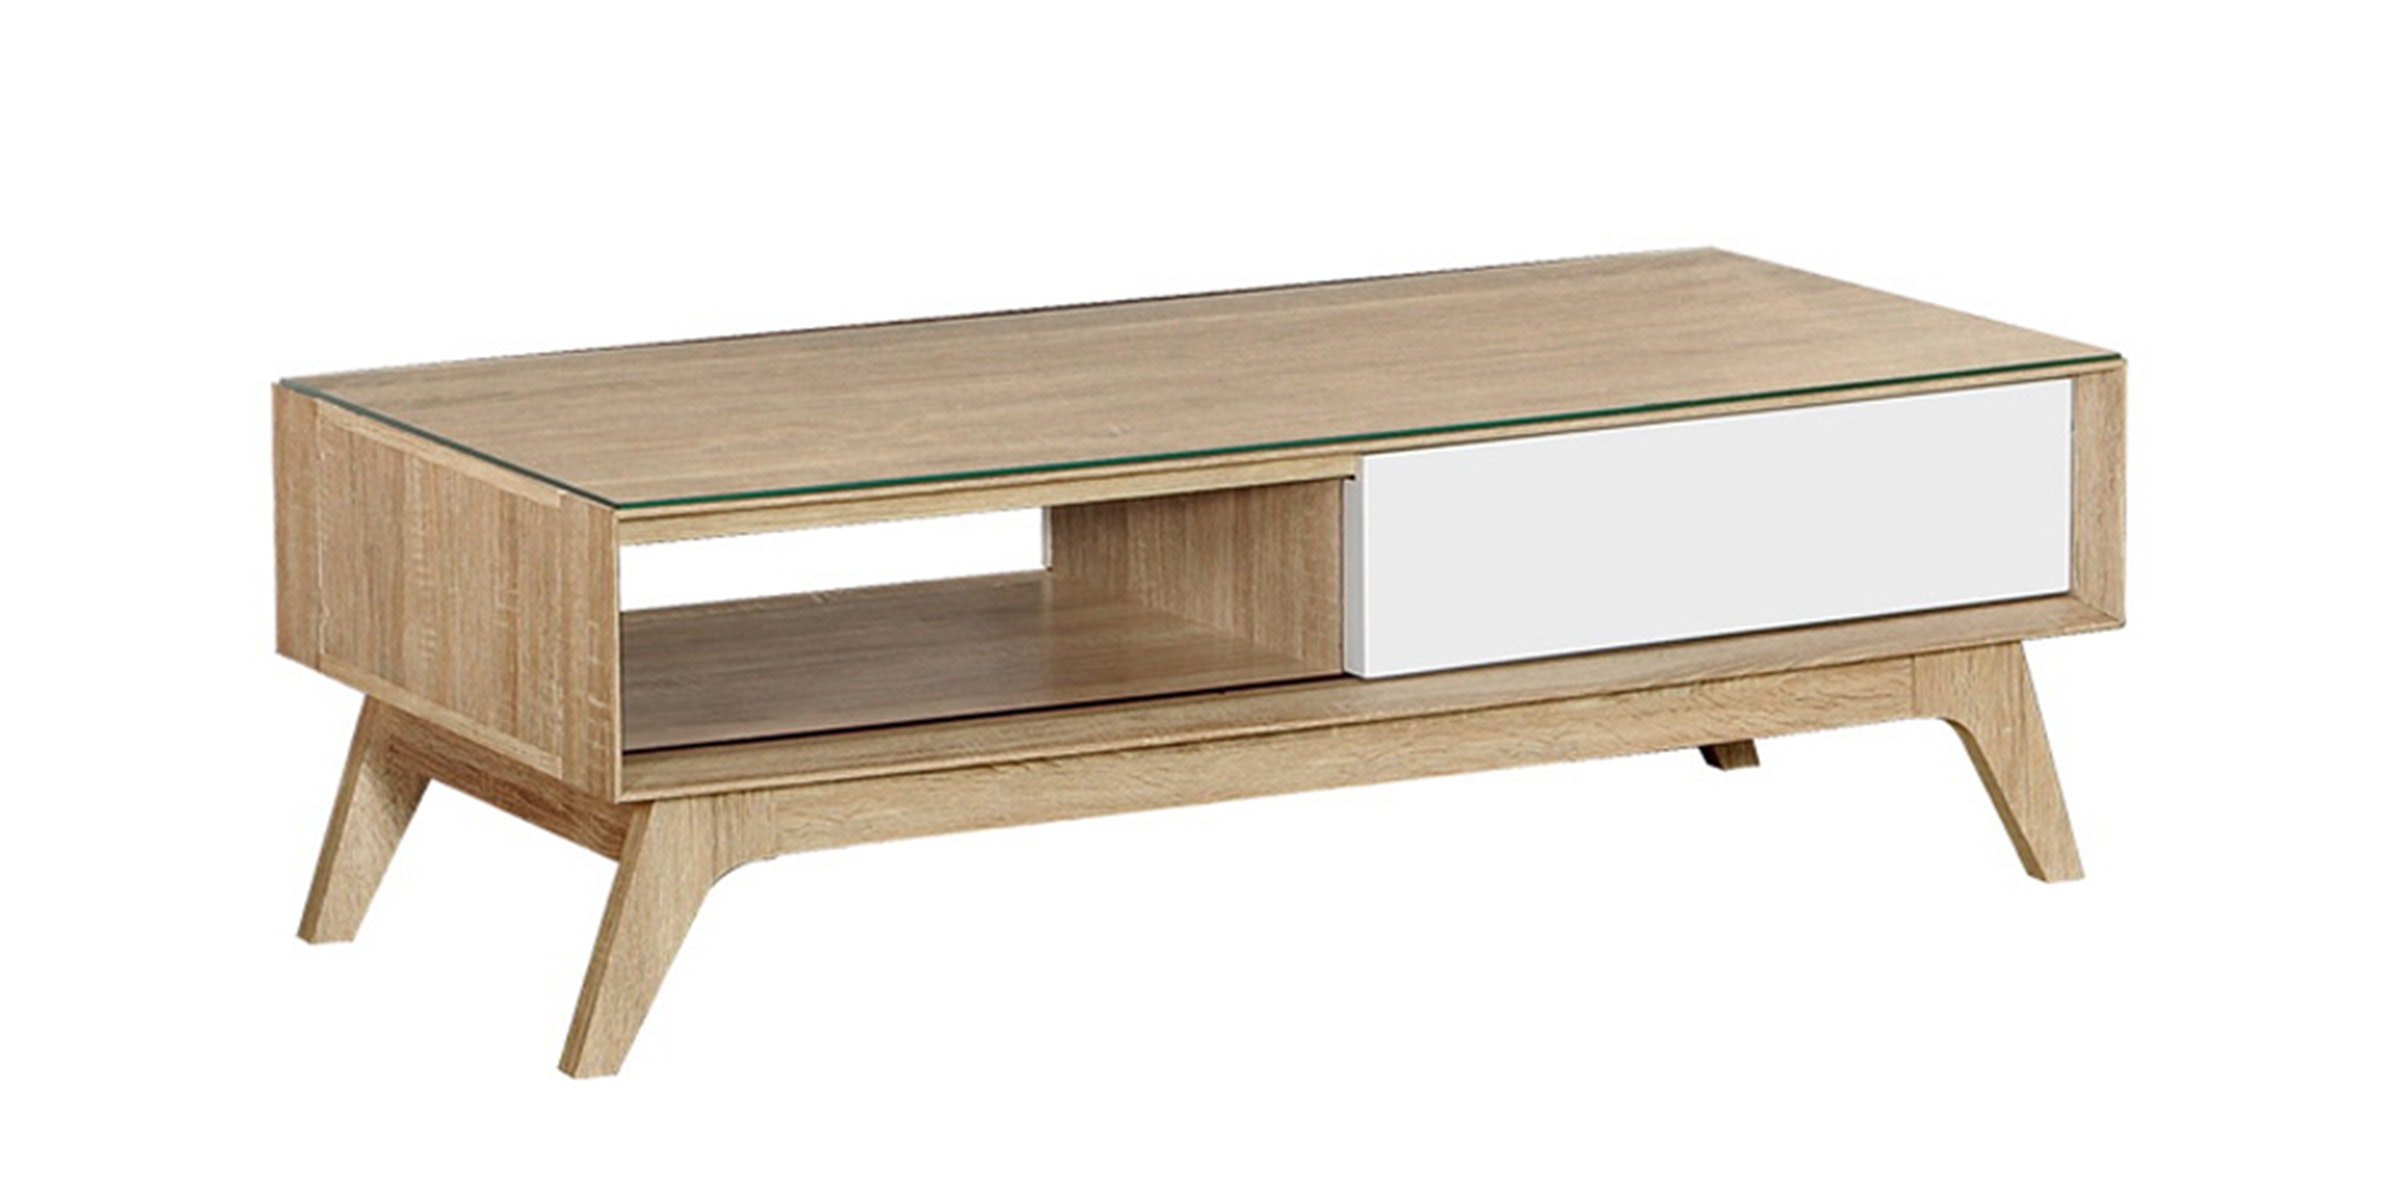 Graver Agusto Coffee Table dengan Laci Sonoma Cream Large